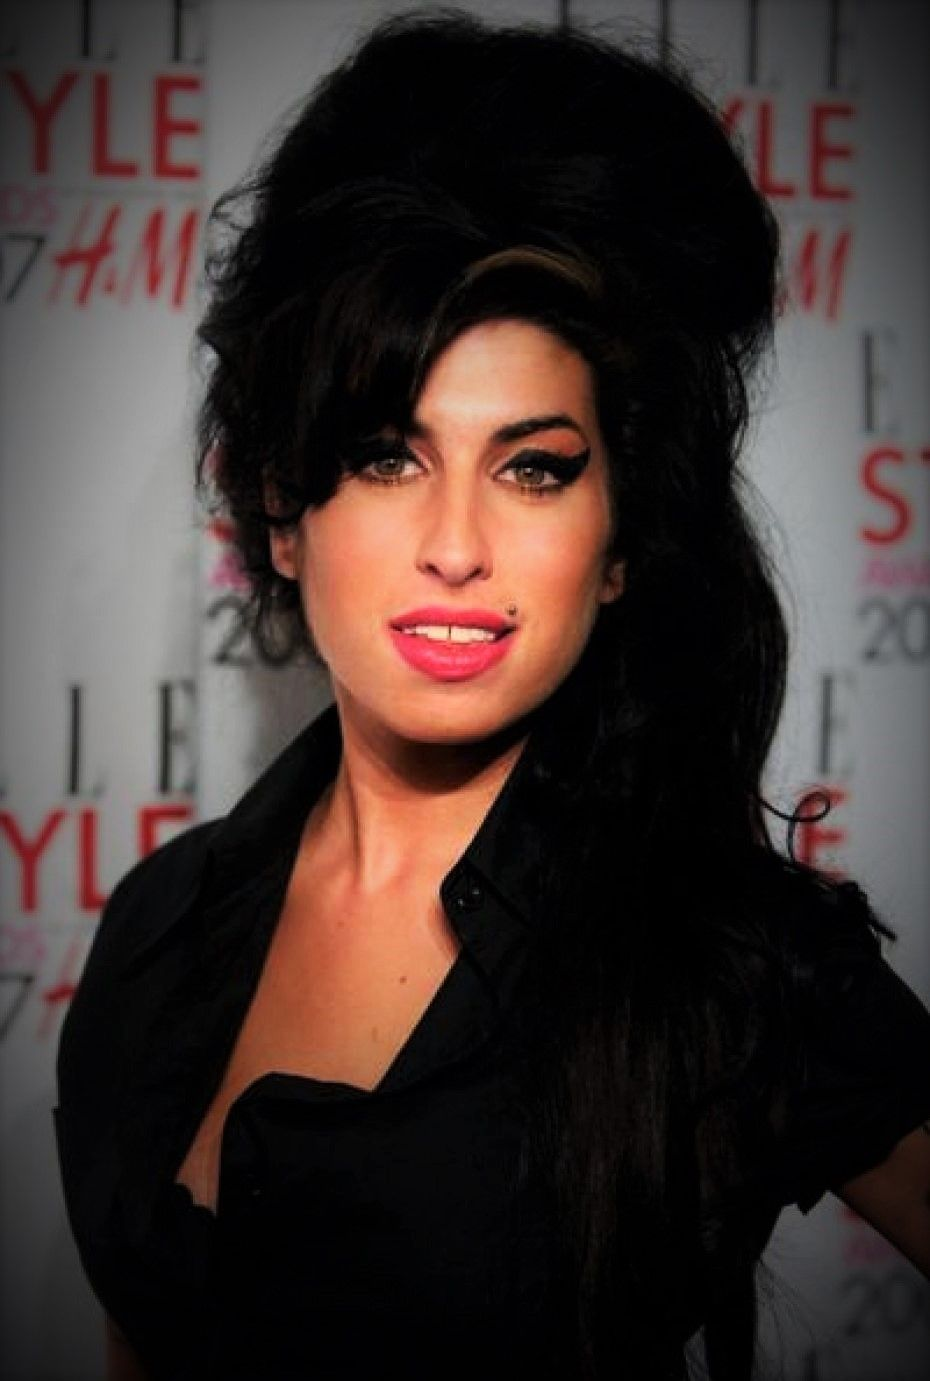 Image Result For Amy Winehouse Winehouse Amy Winehouse Amy Winehouse Black